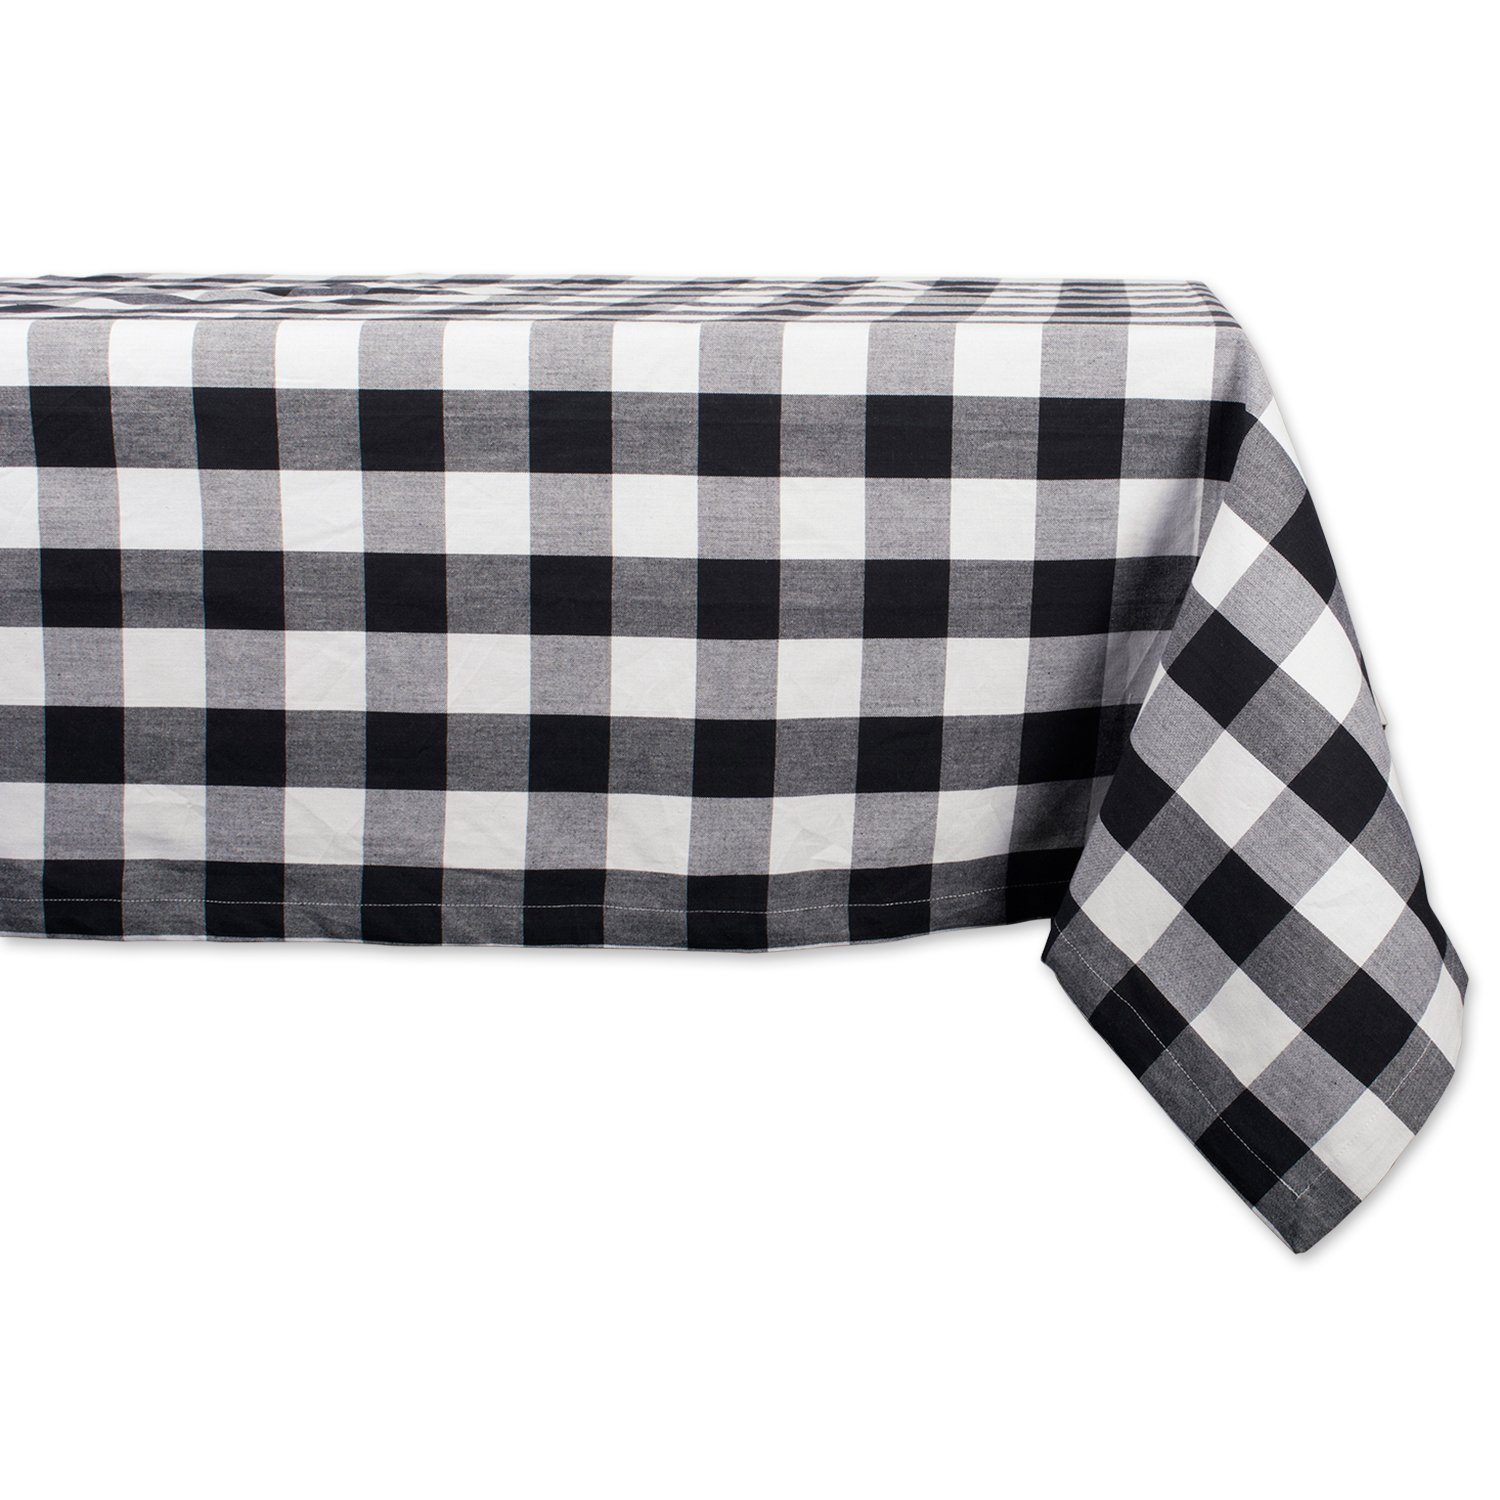 DII Cotton Buffalo Check Plaid Rectangle Tablecloth for Family Dinners or Gatherings, Indoor or Outdoor Parties, & Everyday Use (60x84'',  Seats 6-8 People), Black & White by DII